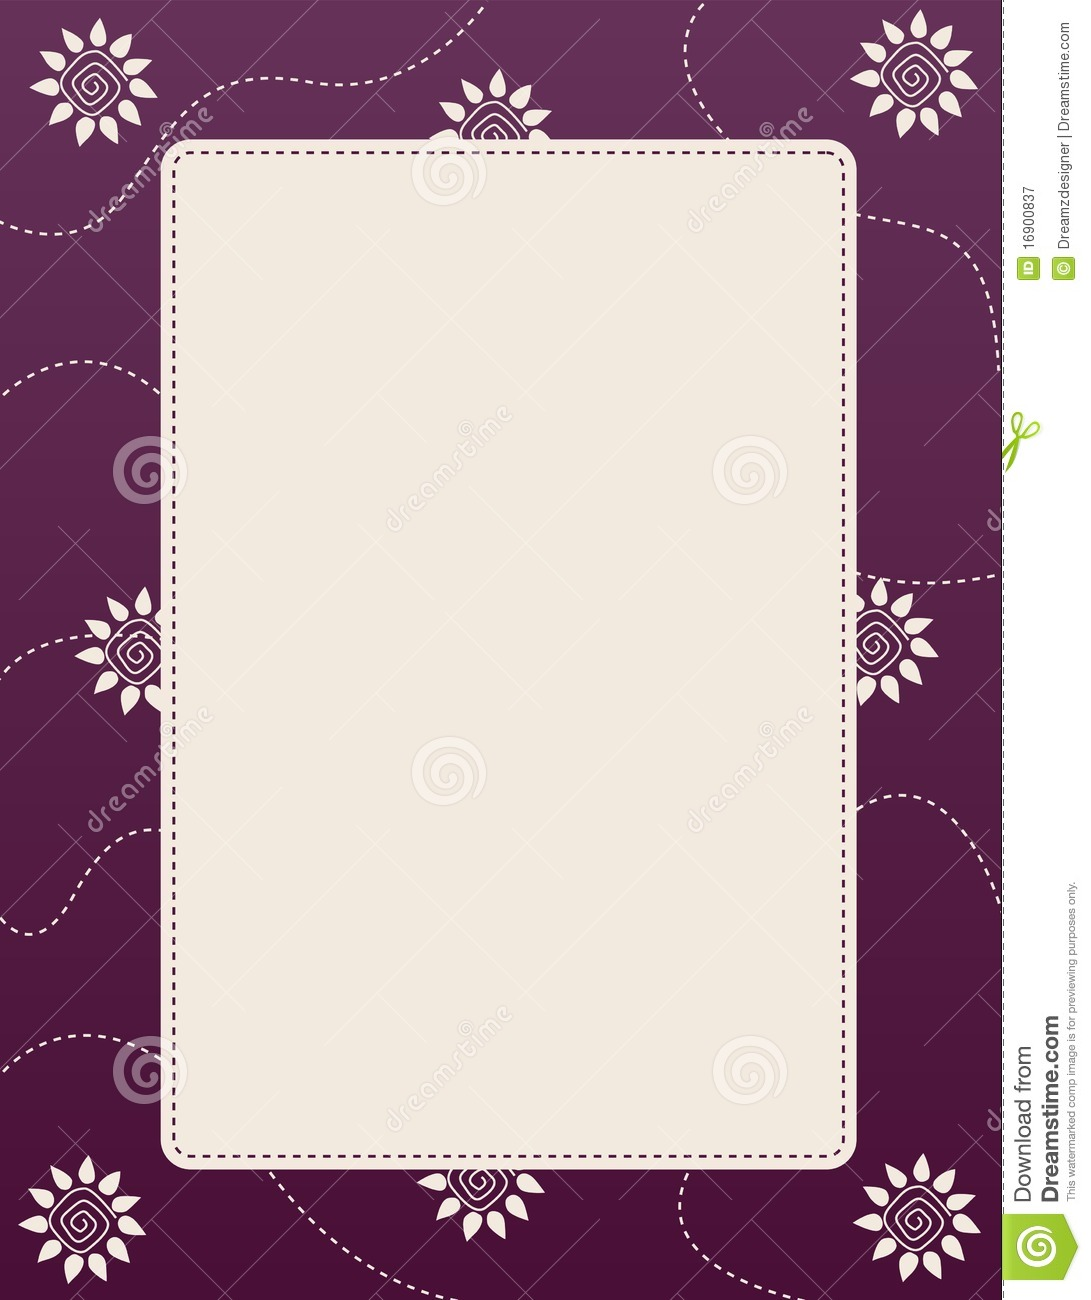 wedding invitation background stock vector illustration of dotted